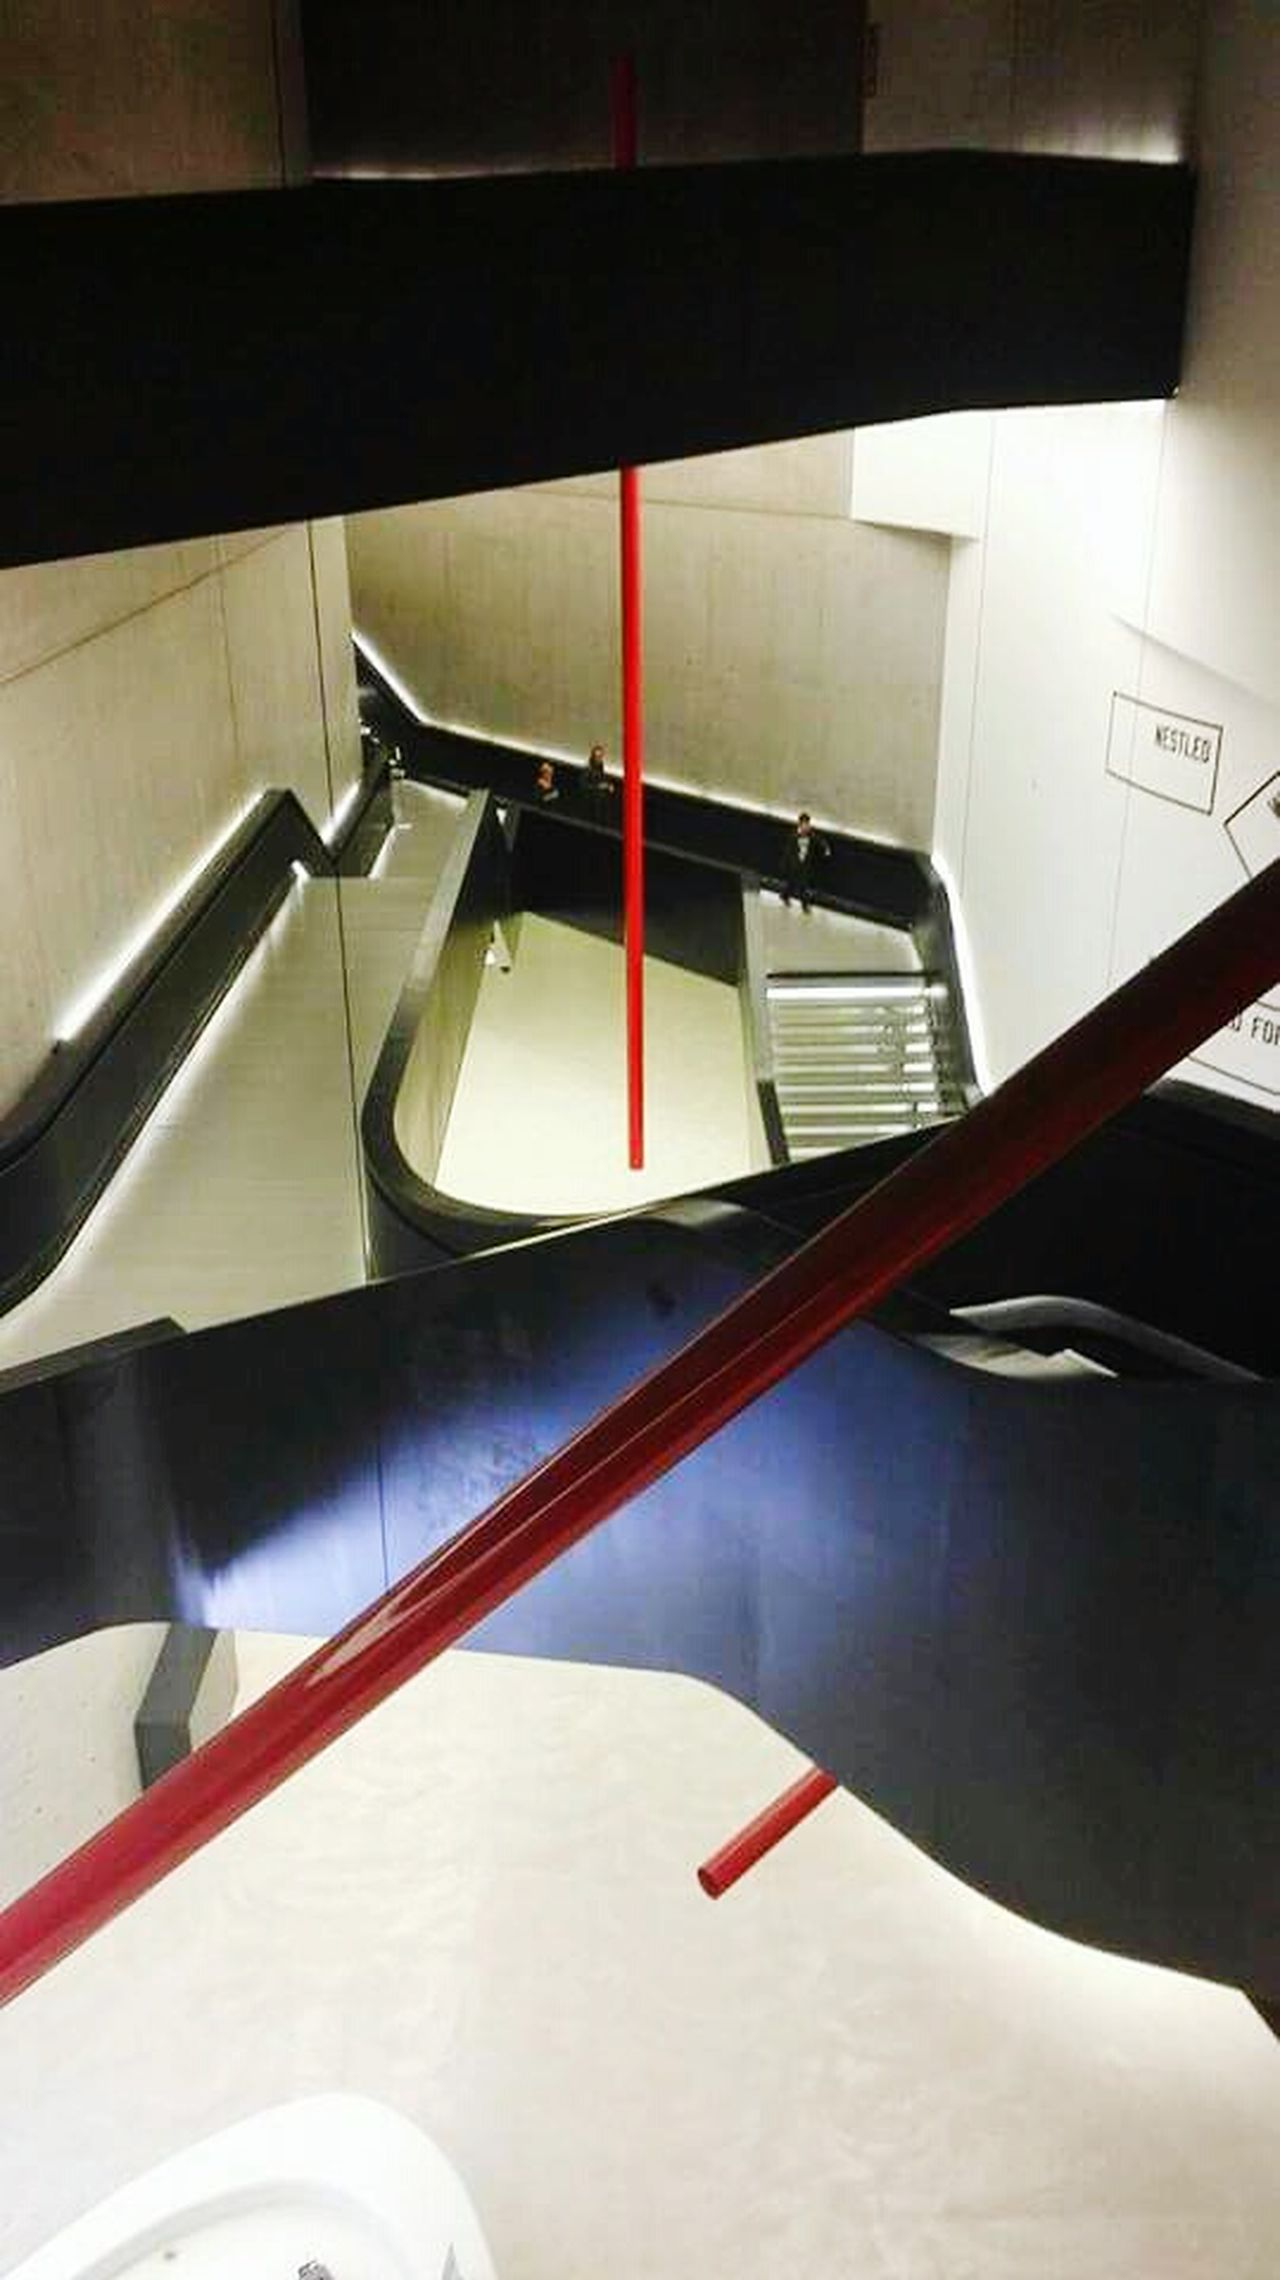 Zaha Hadid Woman Who Inspire You Zaha Hadid's Project MAXXI MAXXI Roma Museum Museum Of Modern Art Roma Italy Travel Destinations Lines Lines And Shapes Red Stairs Modern Architecture Architecture Architecture_collection Architectural Feature White Tube Minimalism Conceptual Photography